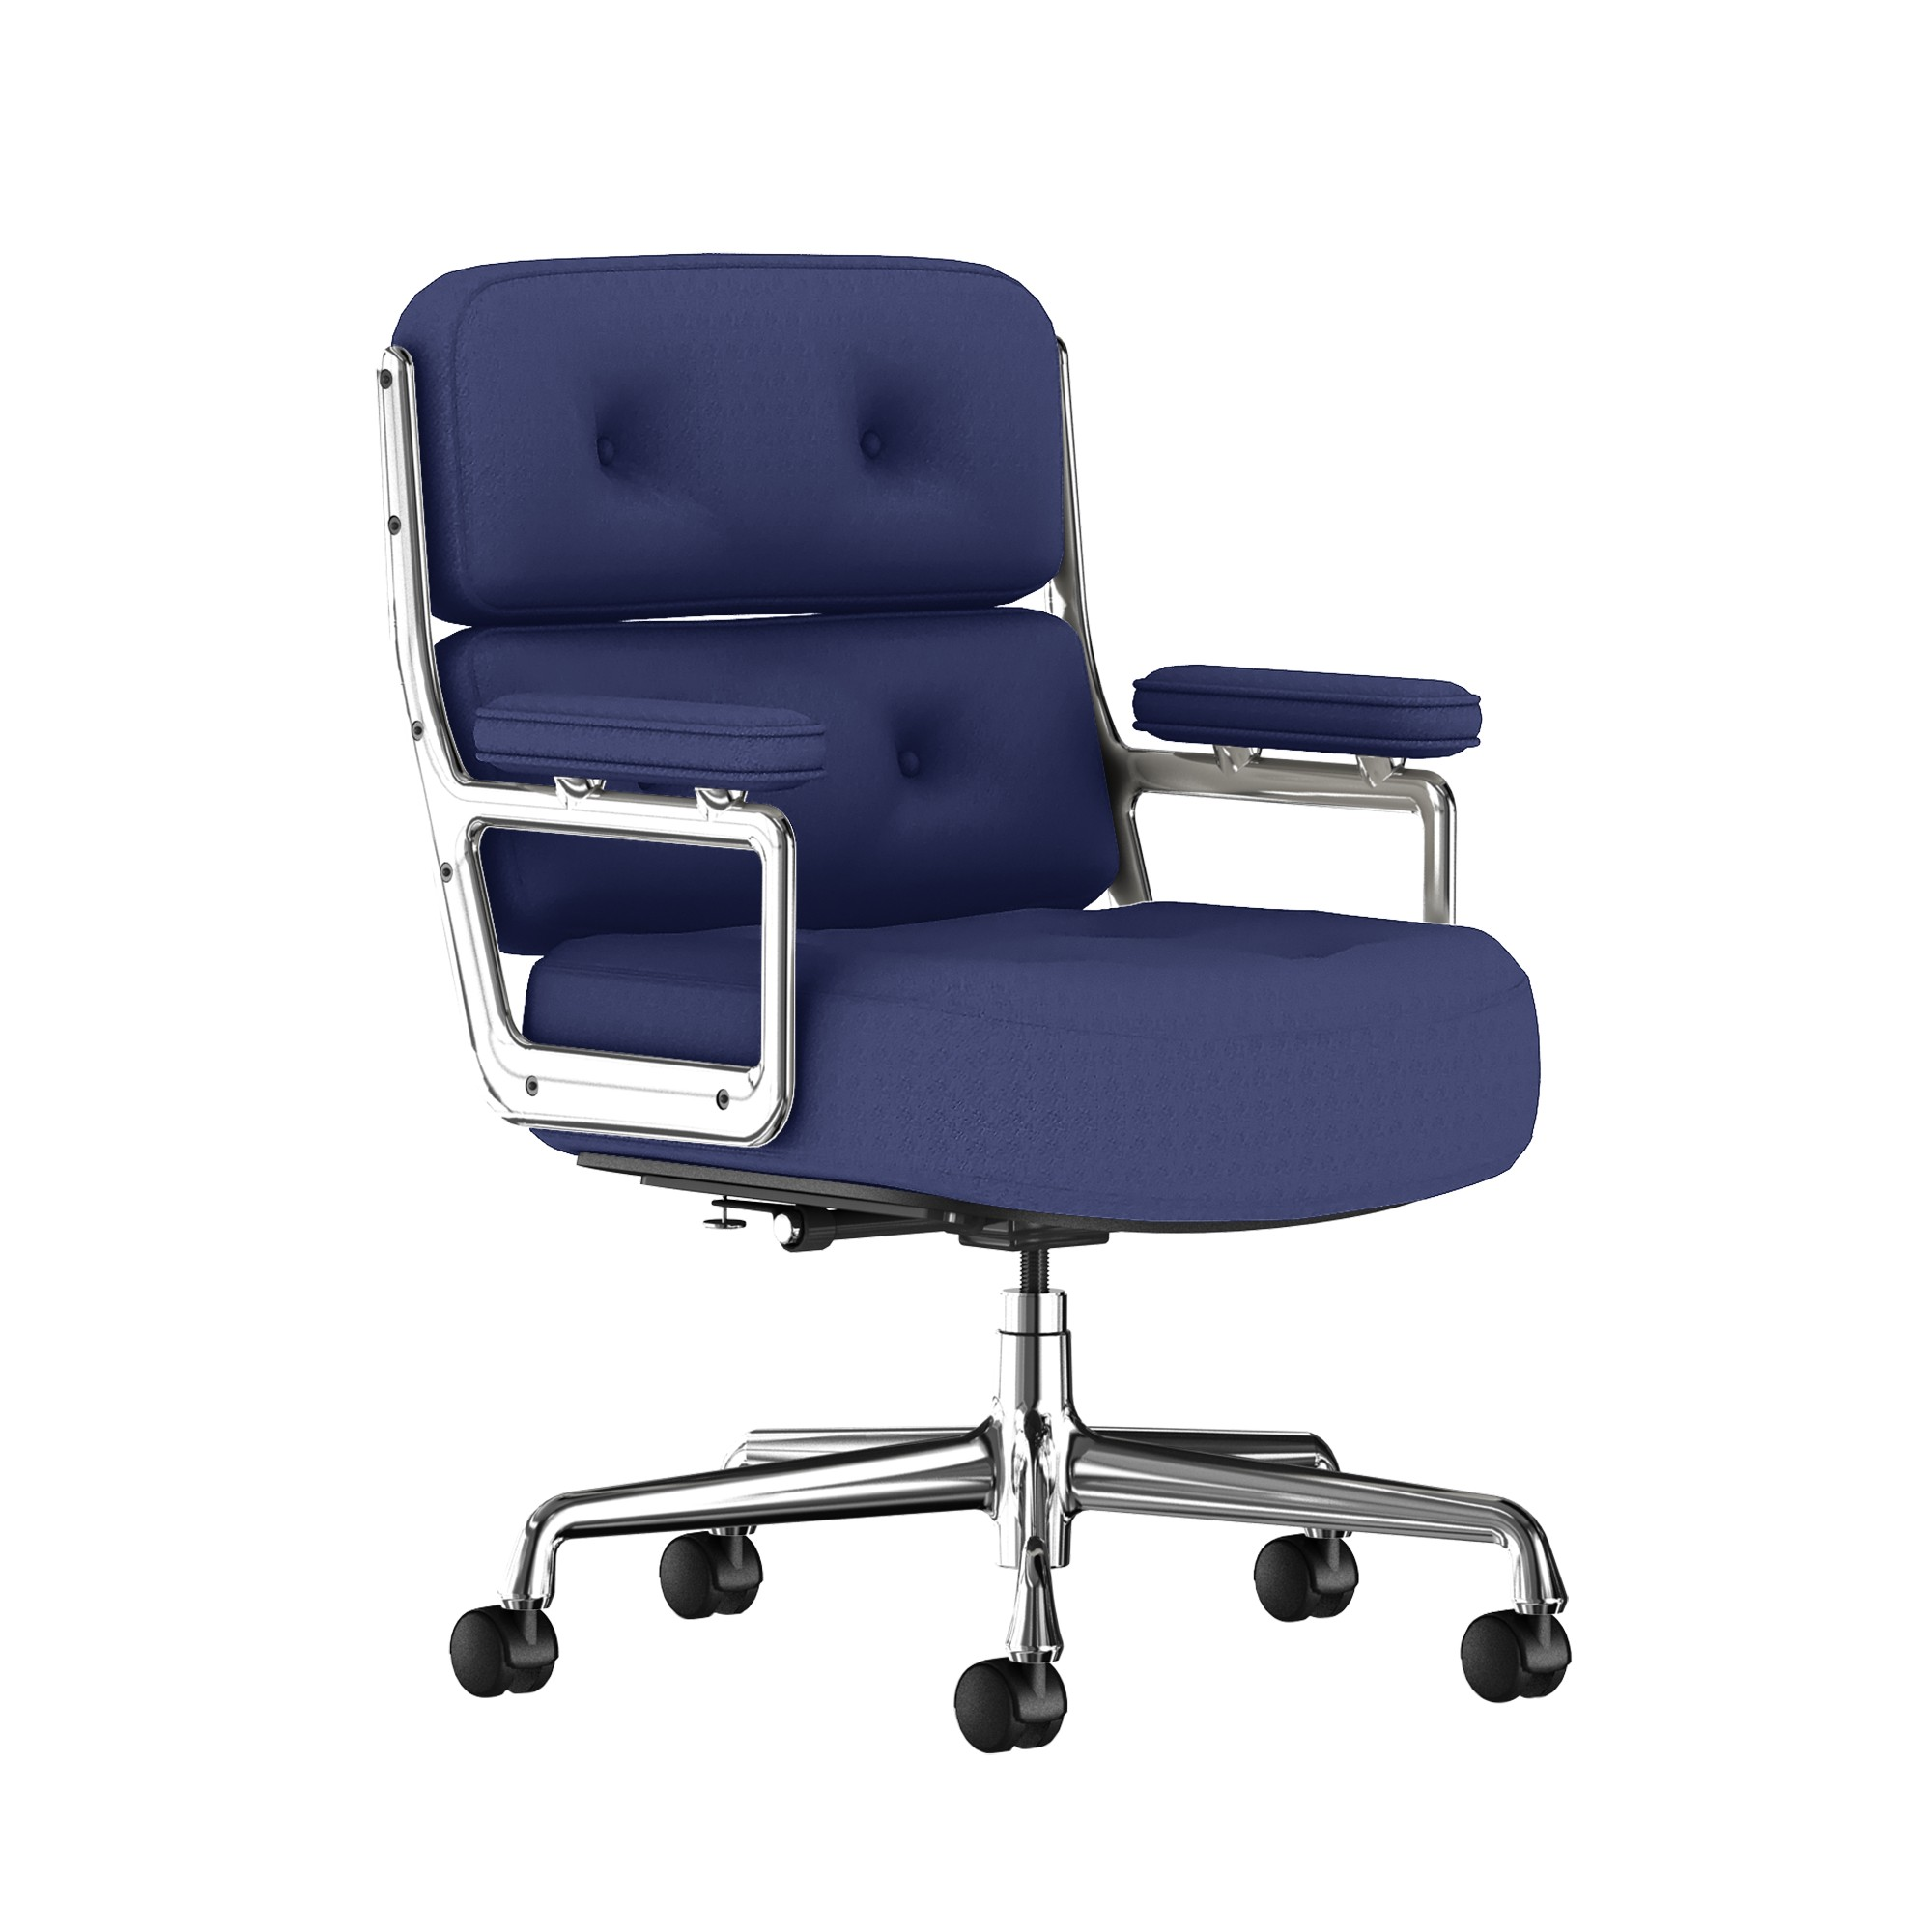 Eames Executive Work Chair Fabric in Twilight by Herman Miller